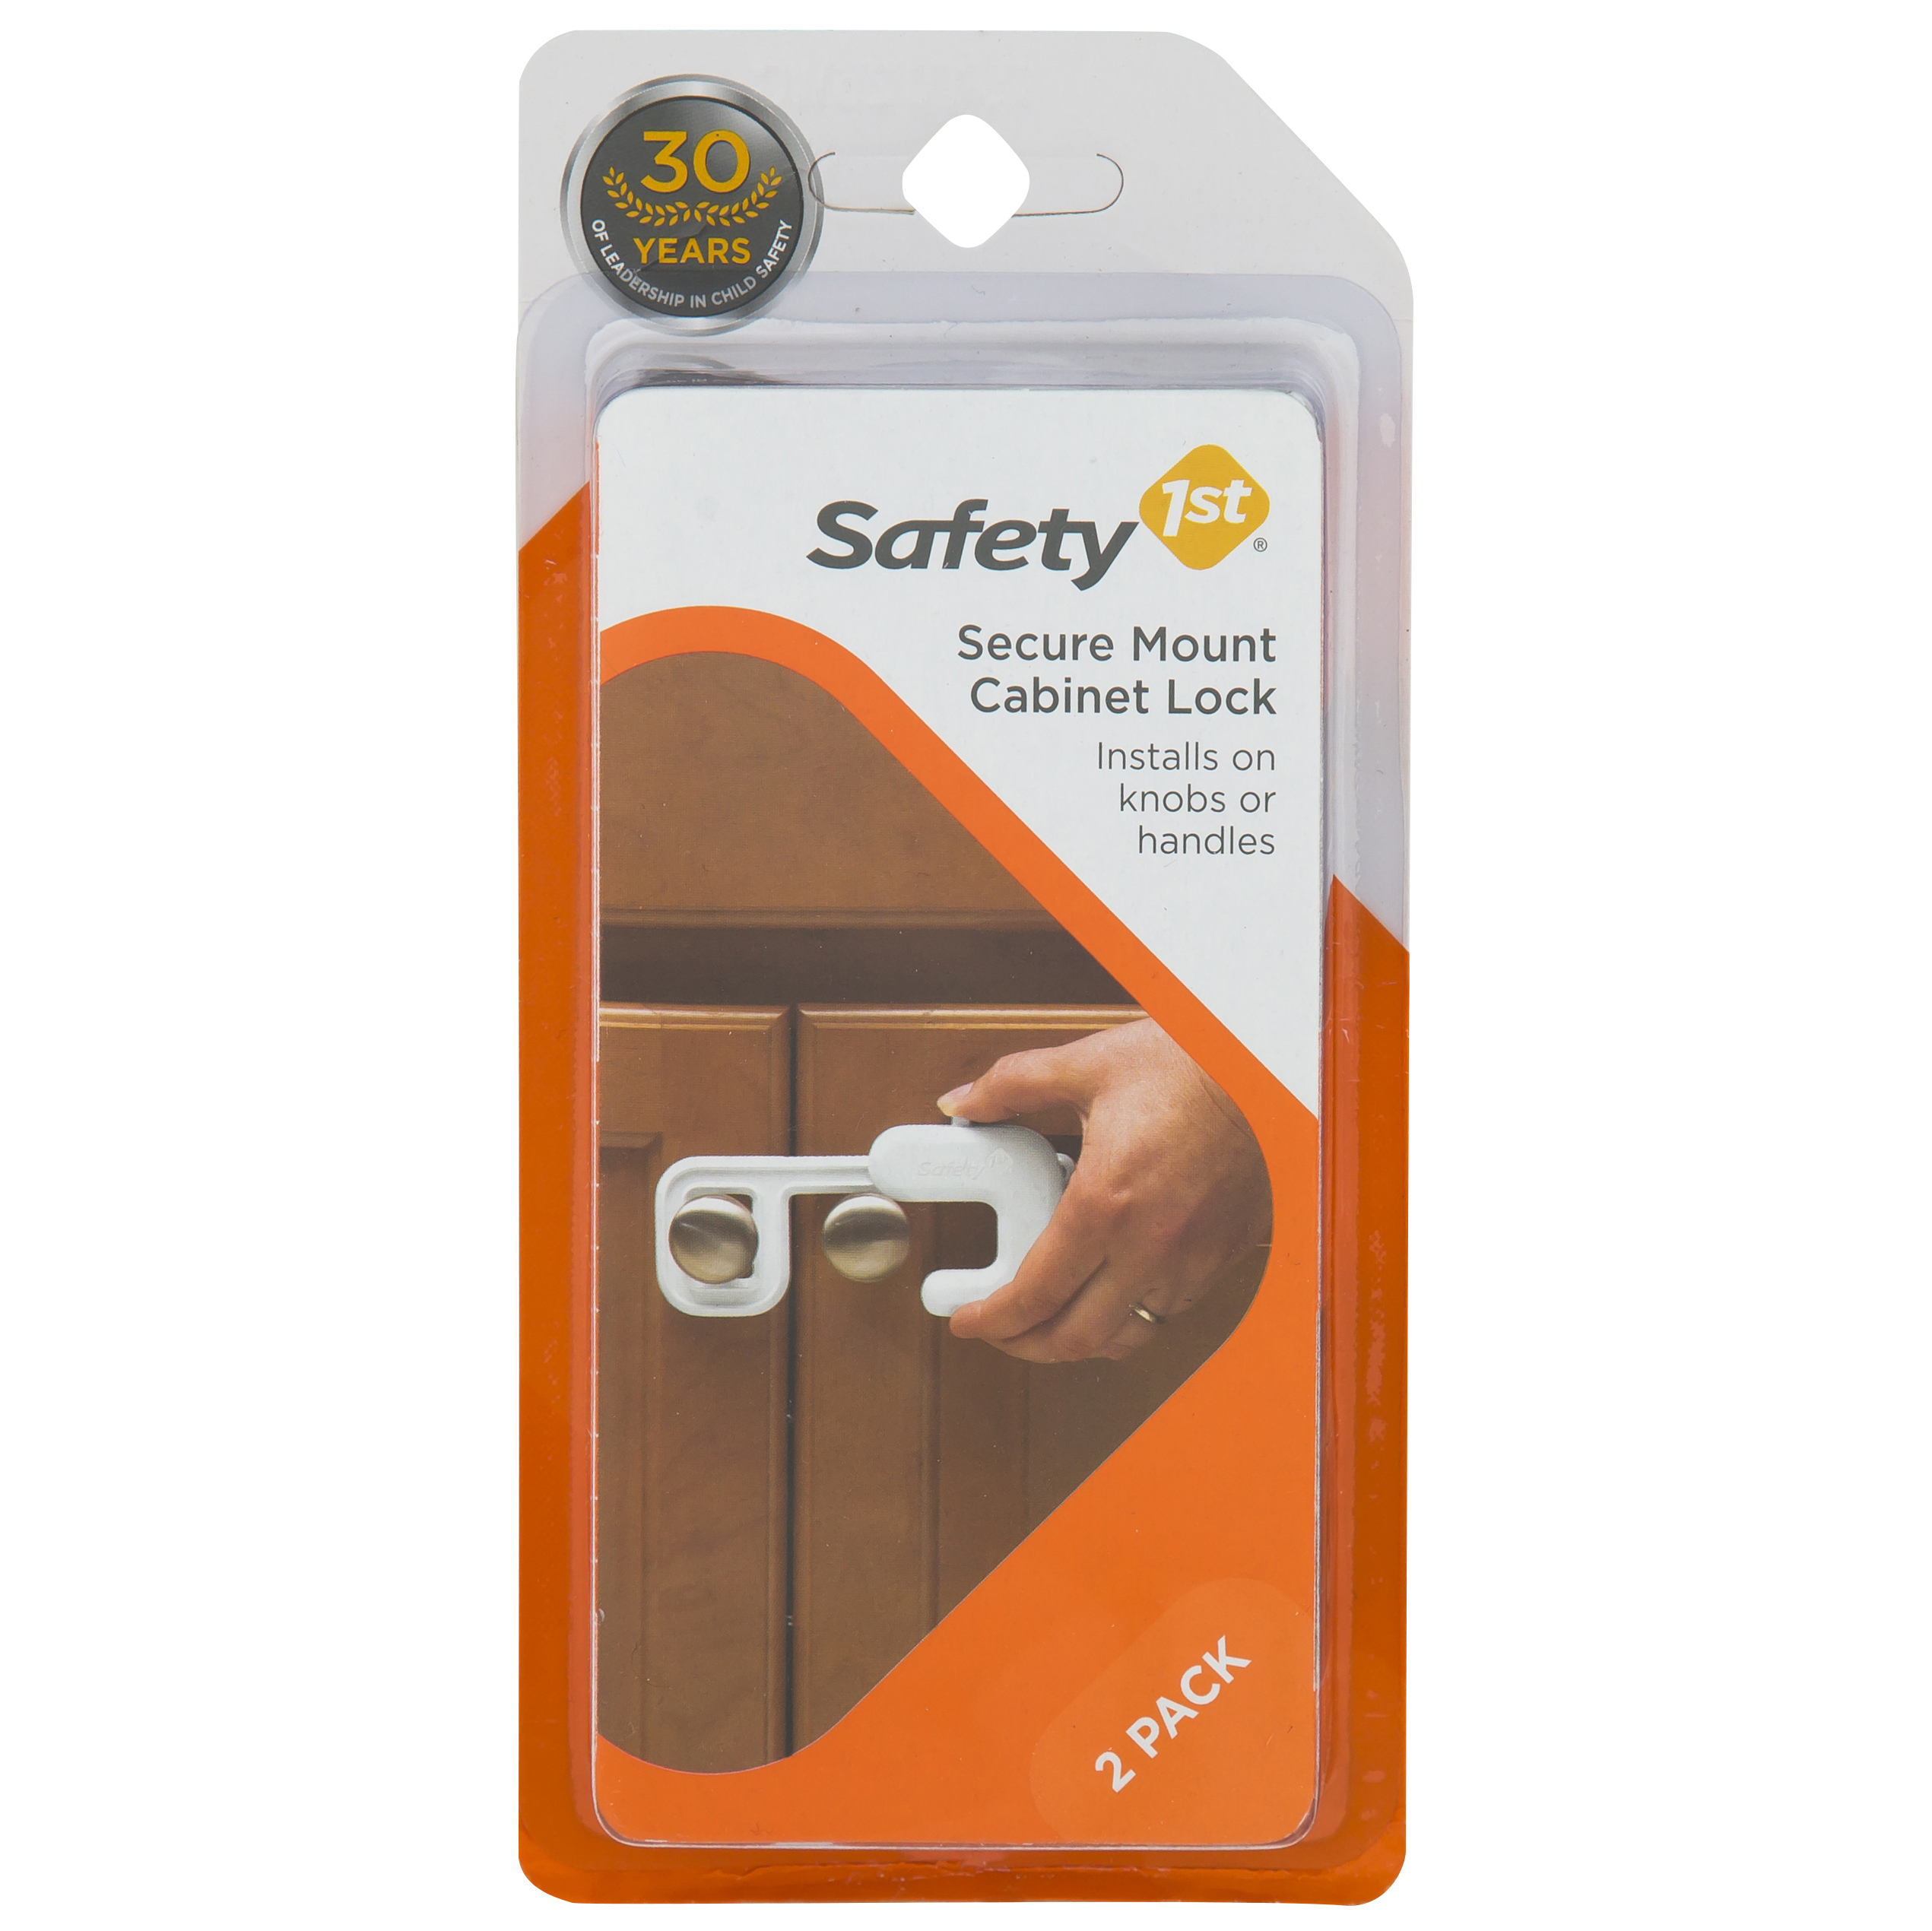 Secure Mount Home Safety Cabinet Lock (2pk) by Safety 1st